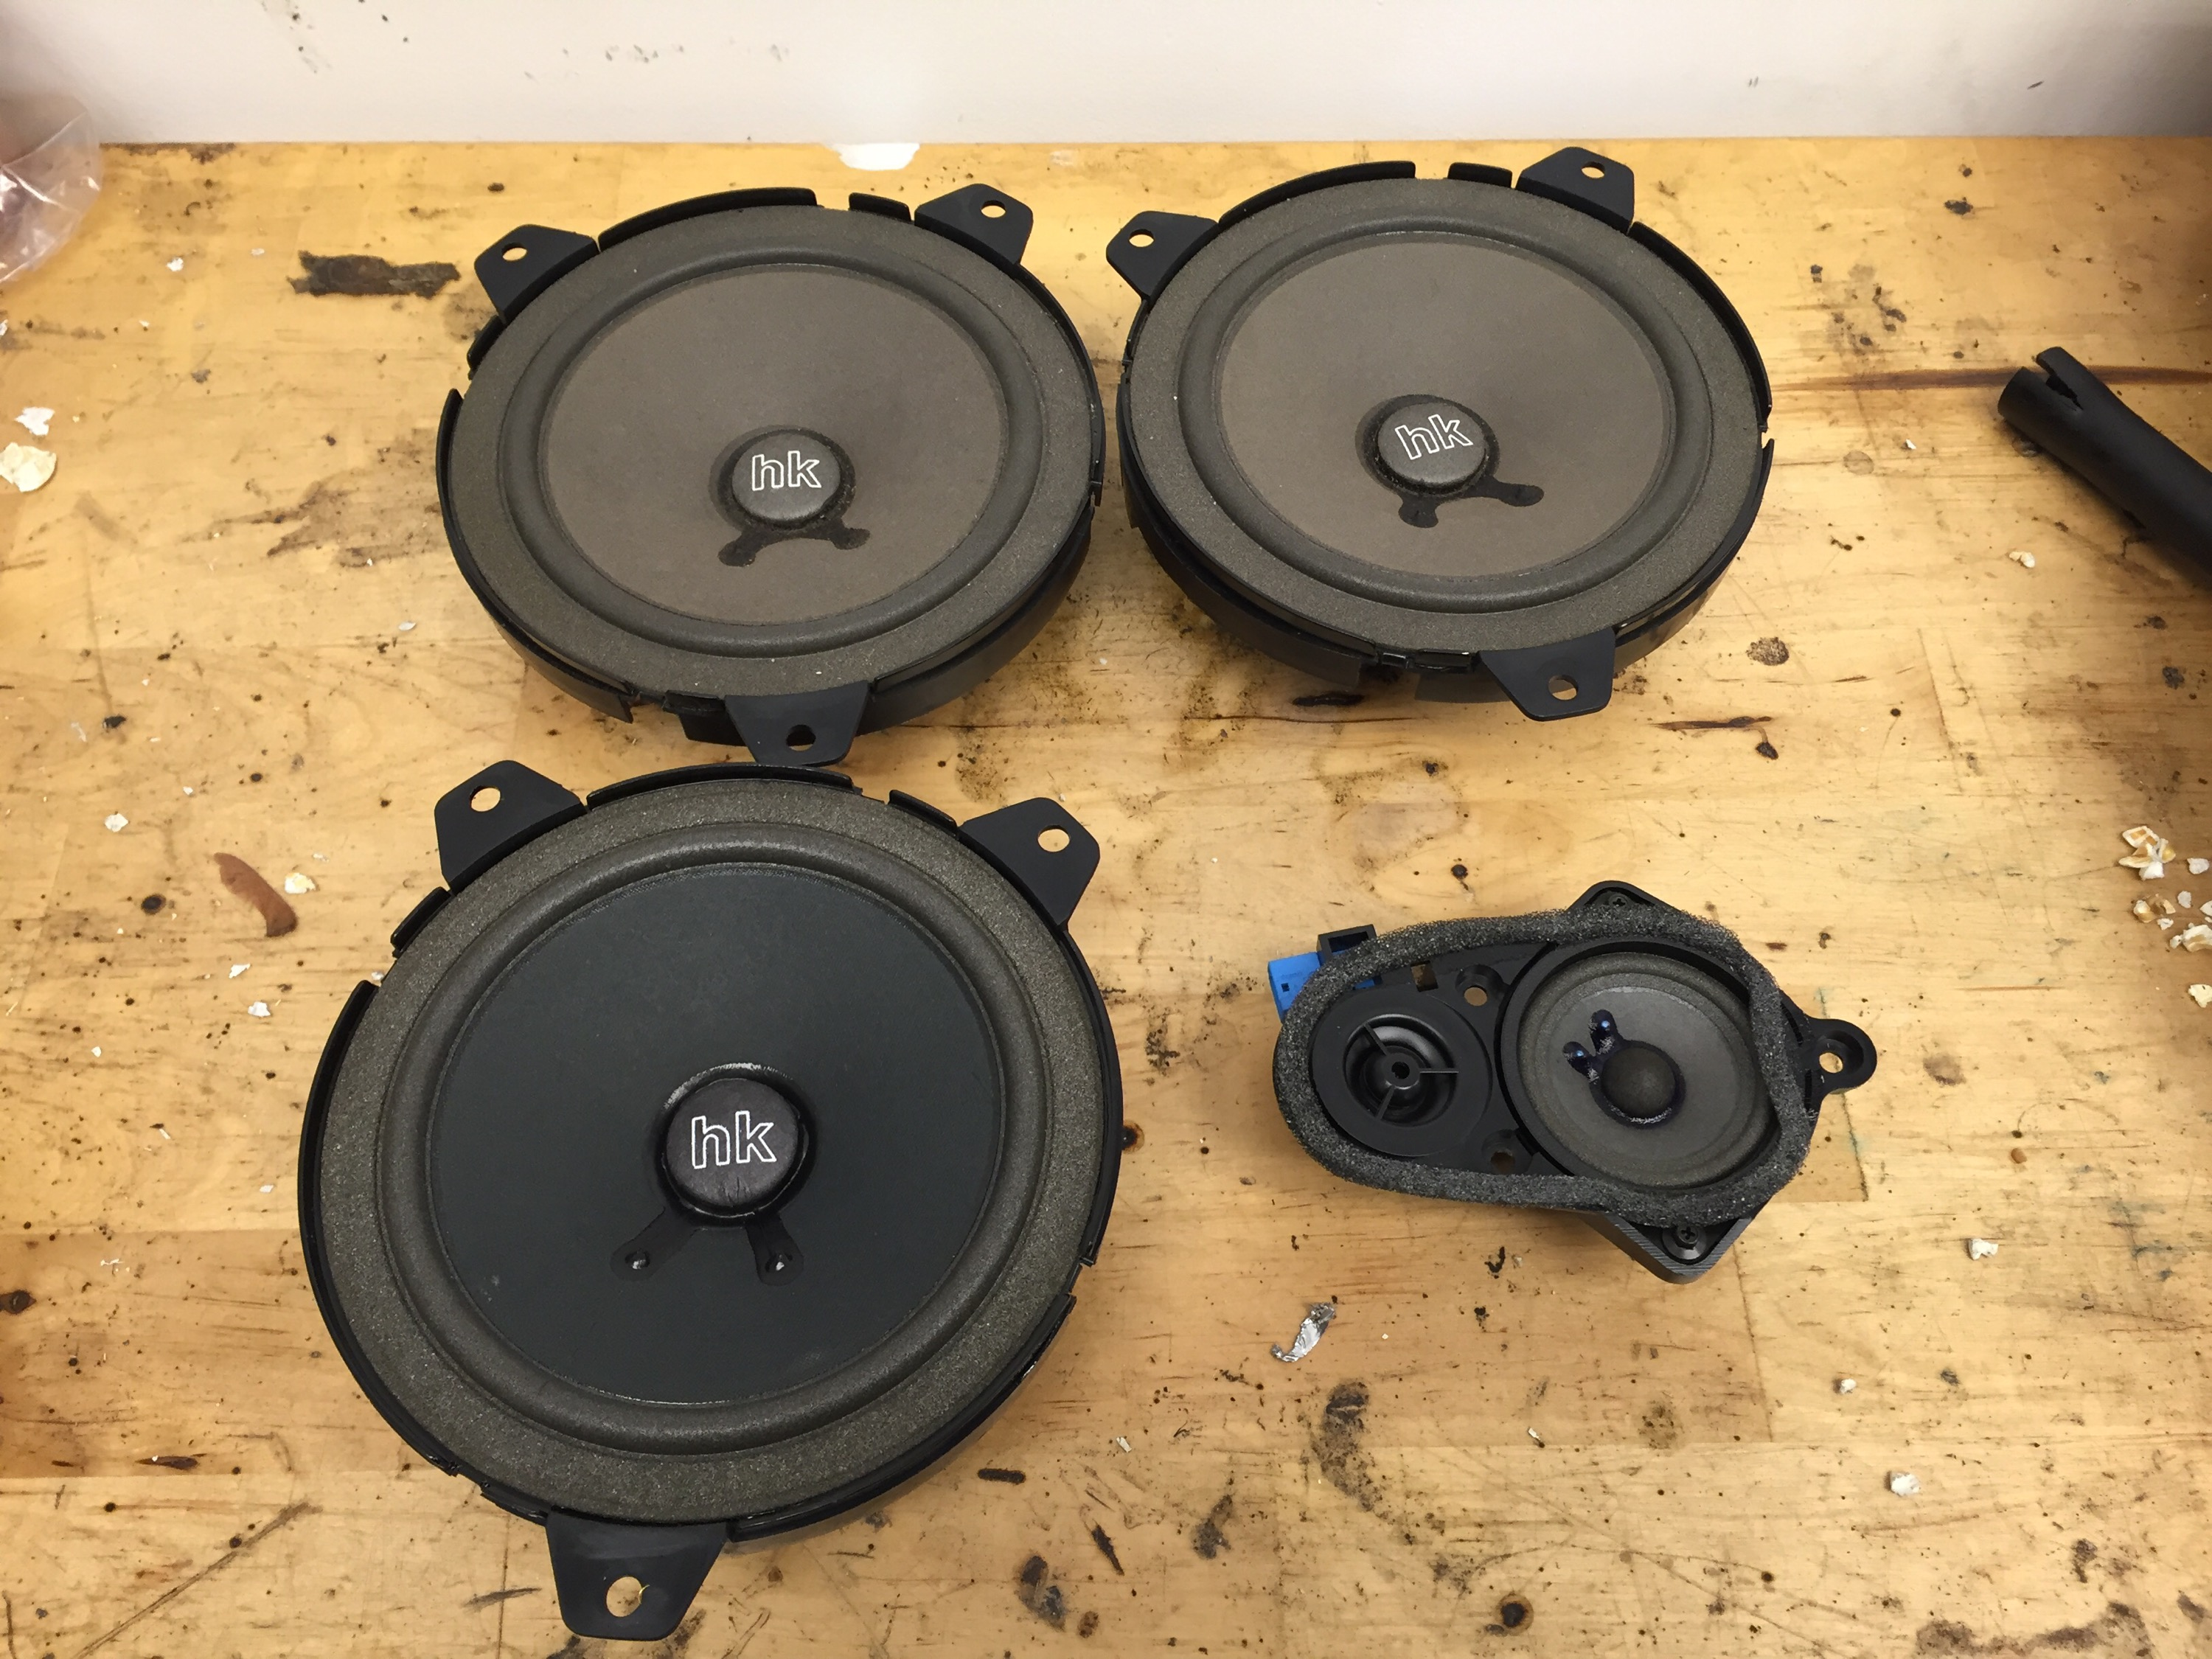 Bavsound E46 Speaker Upgrade Build Race Party Bmw Wiring Can You See A Speakers Sound If This Makes Much Better Than The Factory Im Replacing Woofer Itself Looks Like